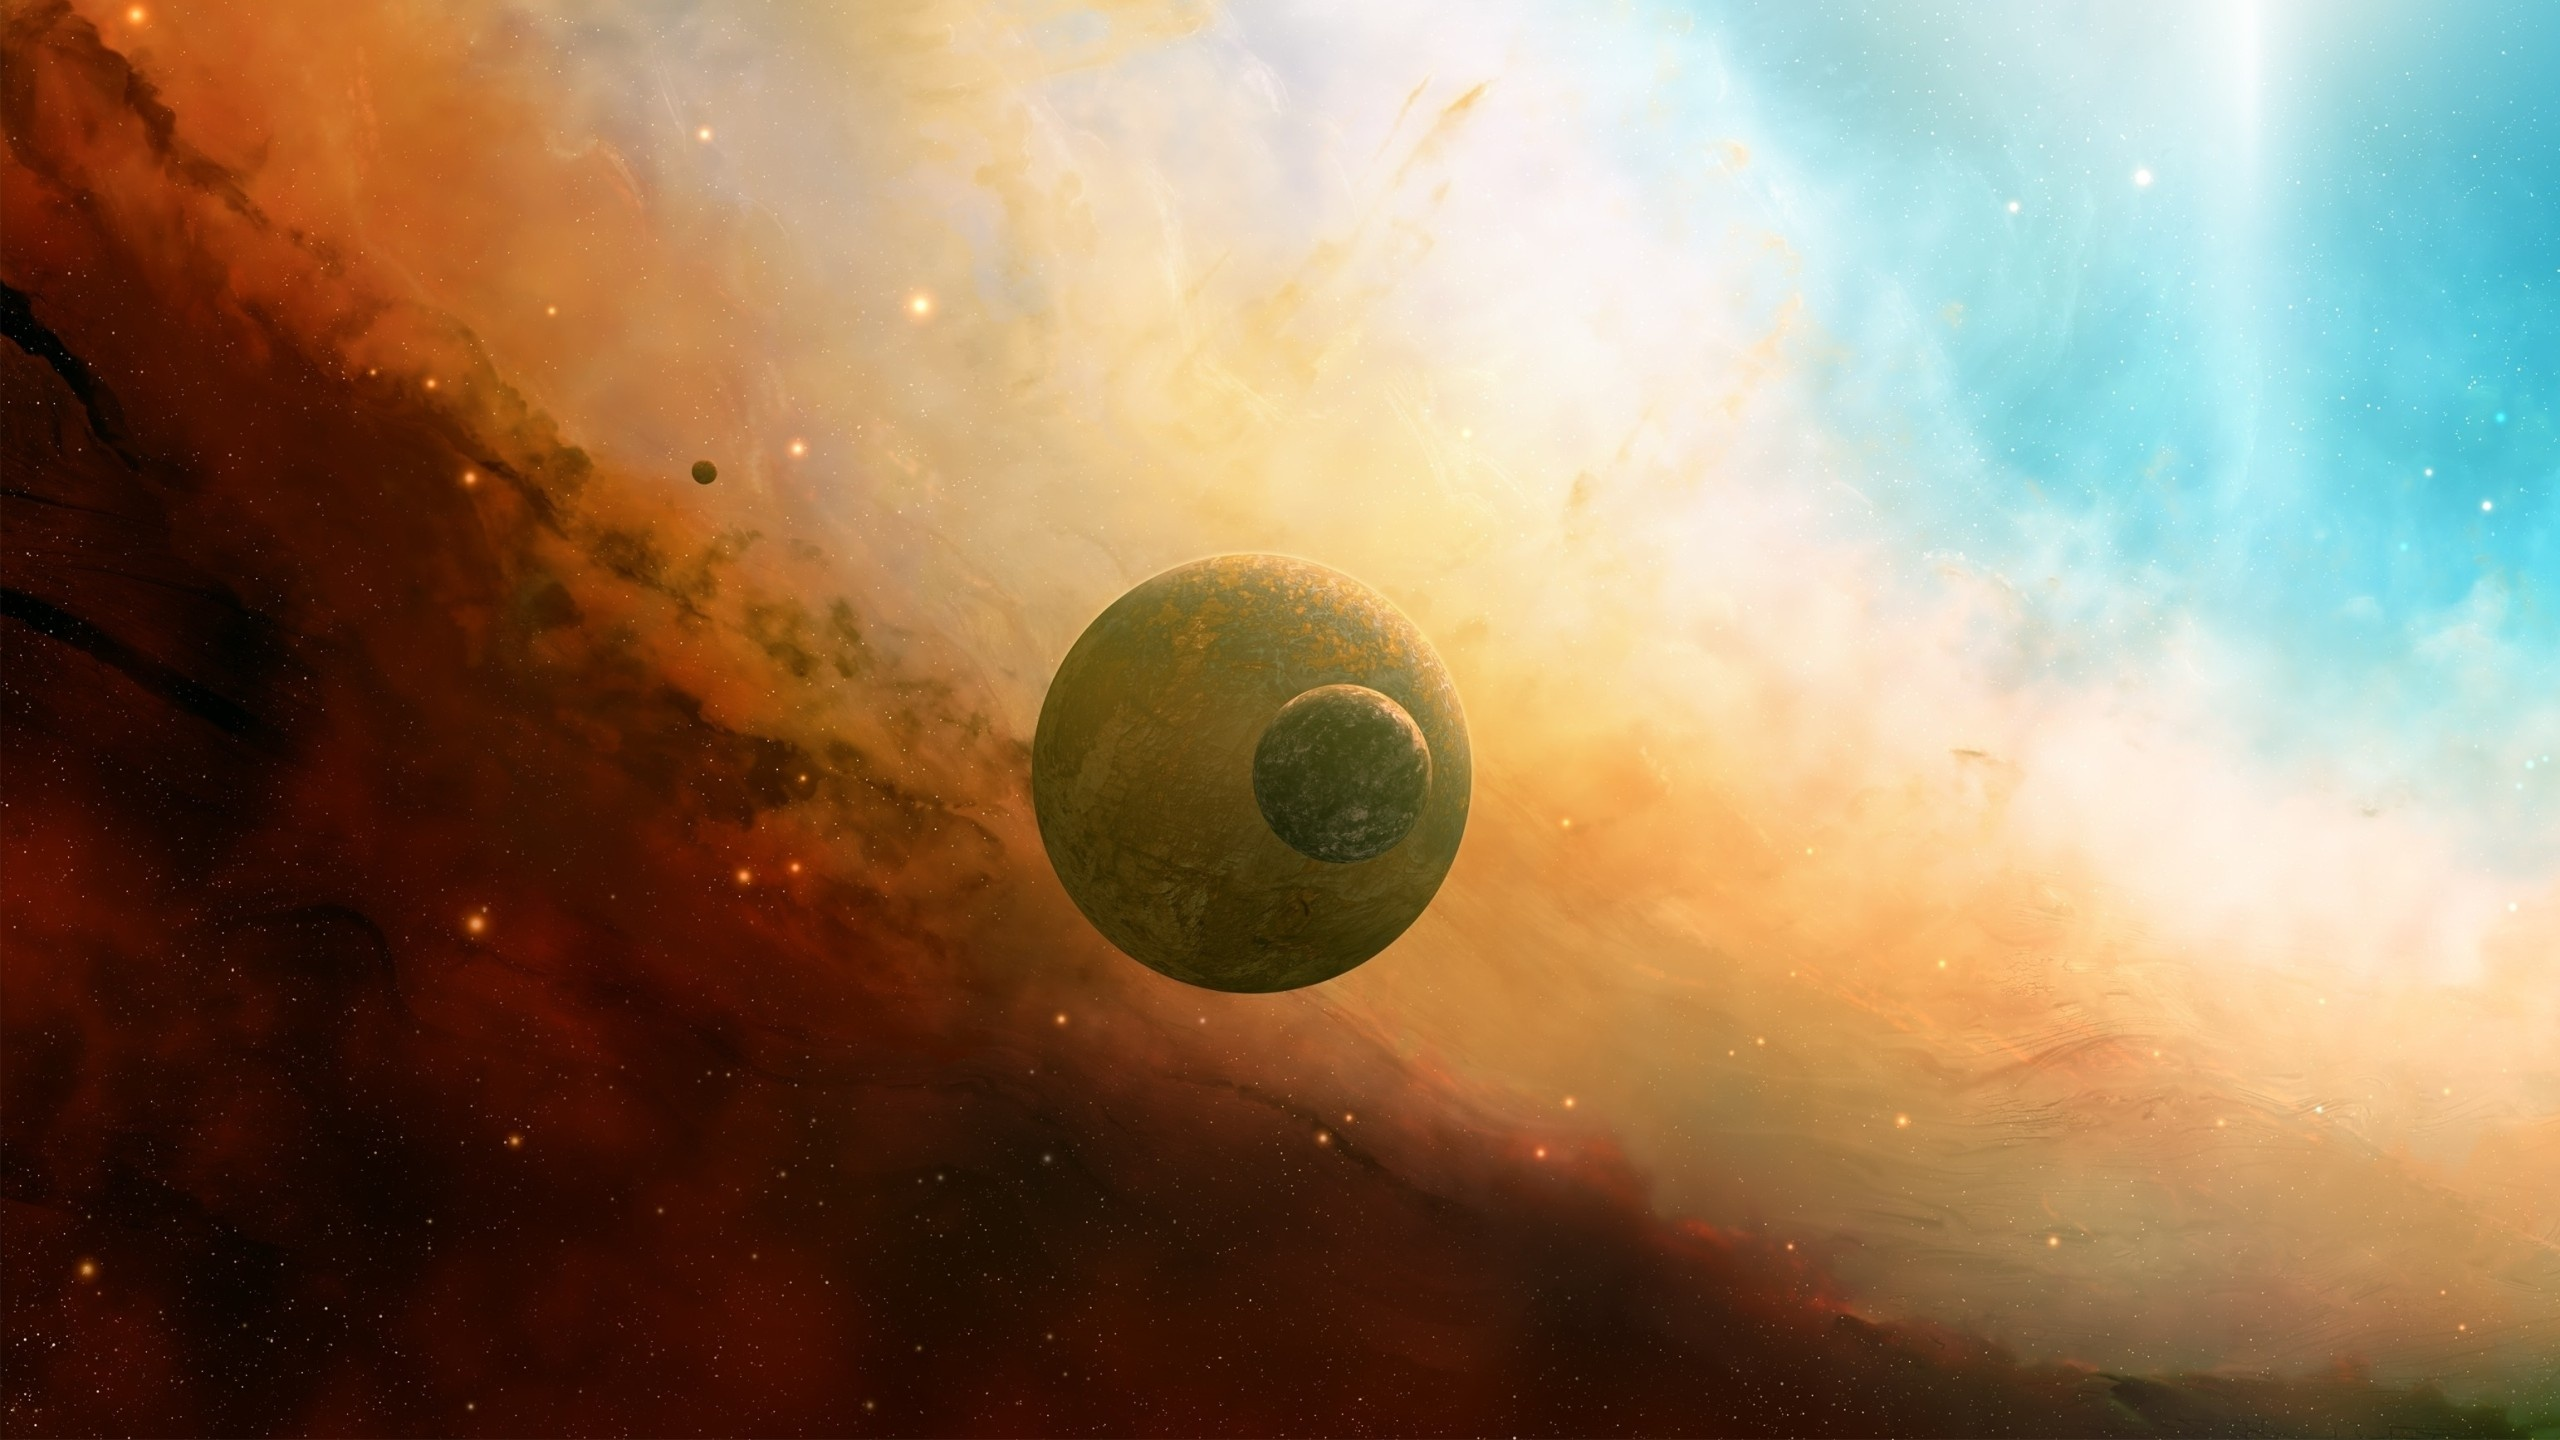 Colorful Outer Space 2560 x 1440 Download Close 2560x1440